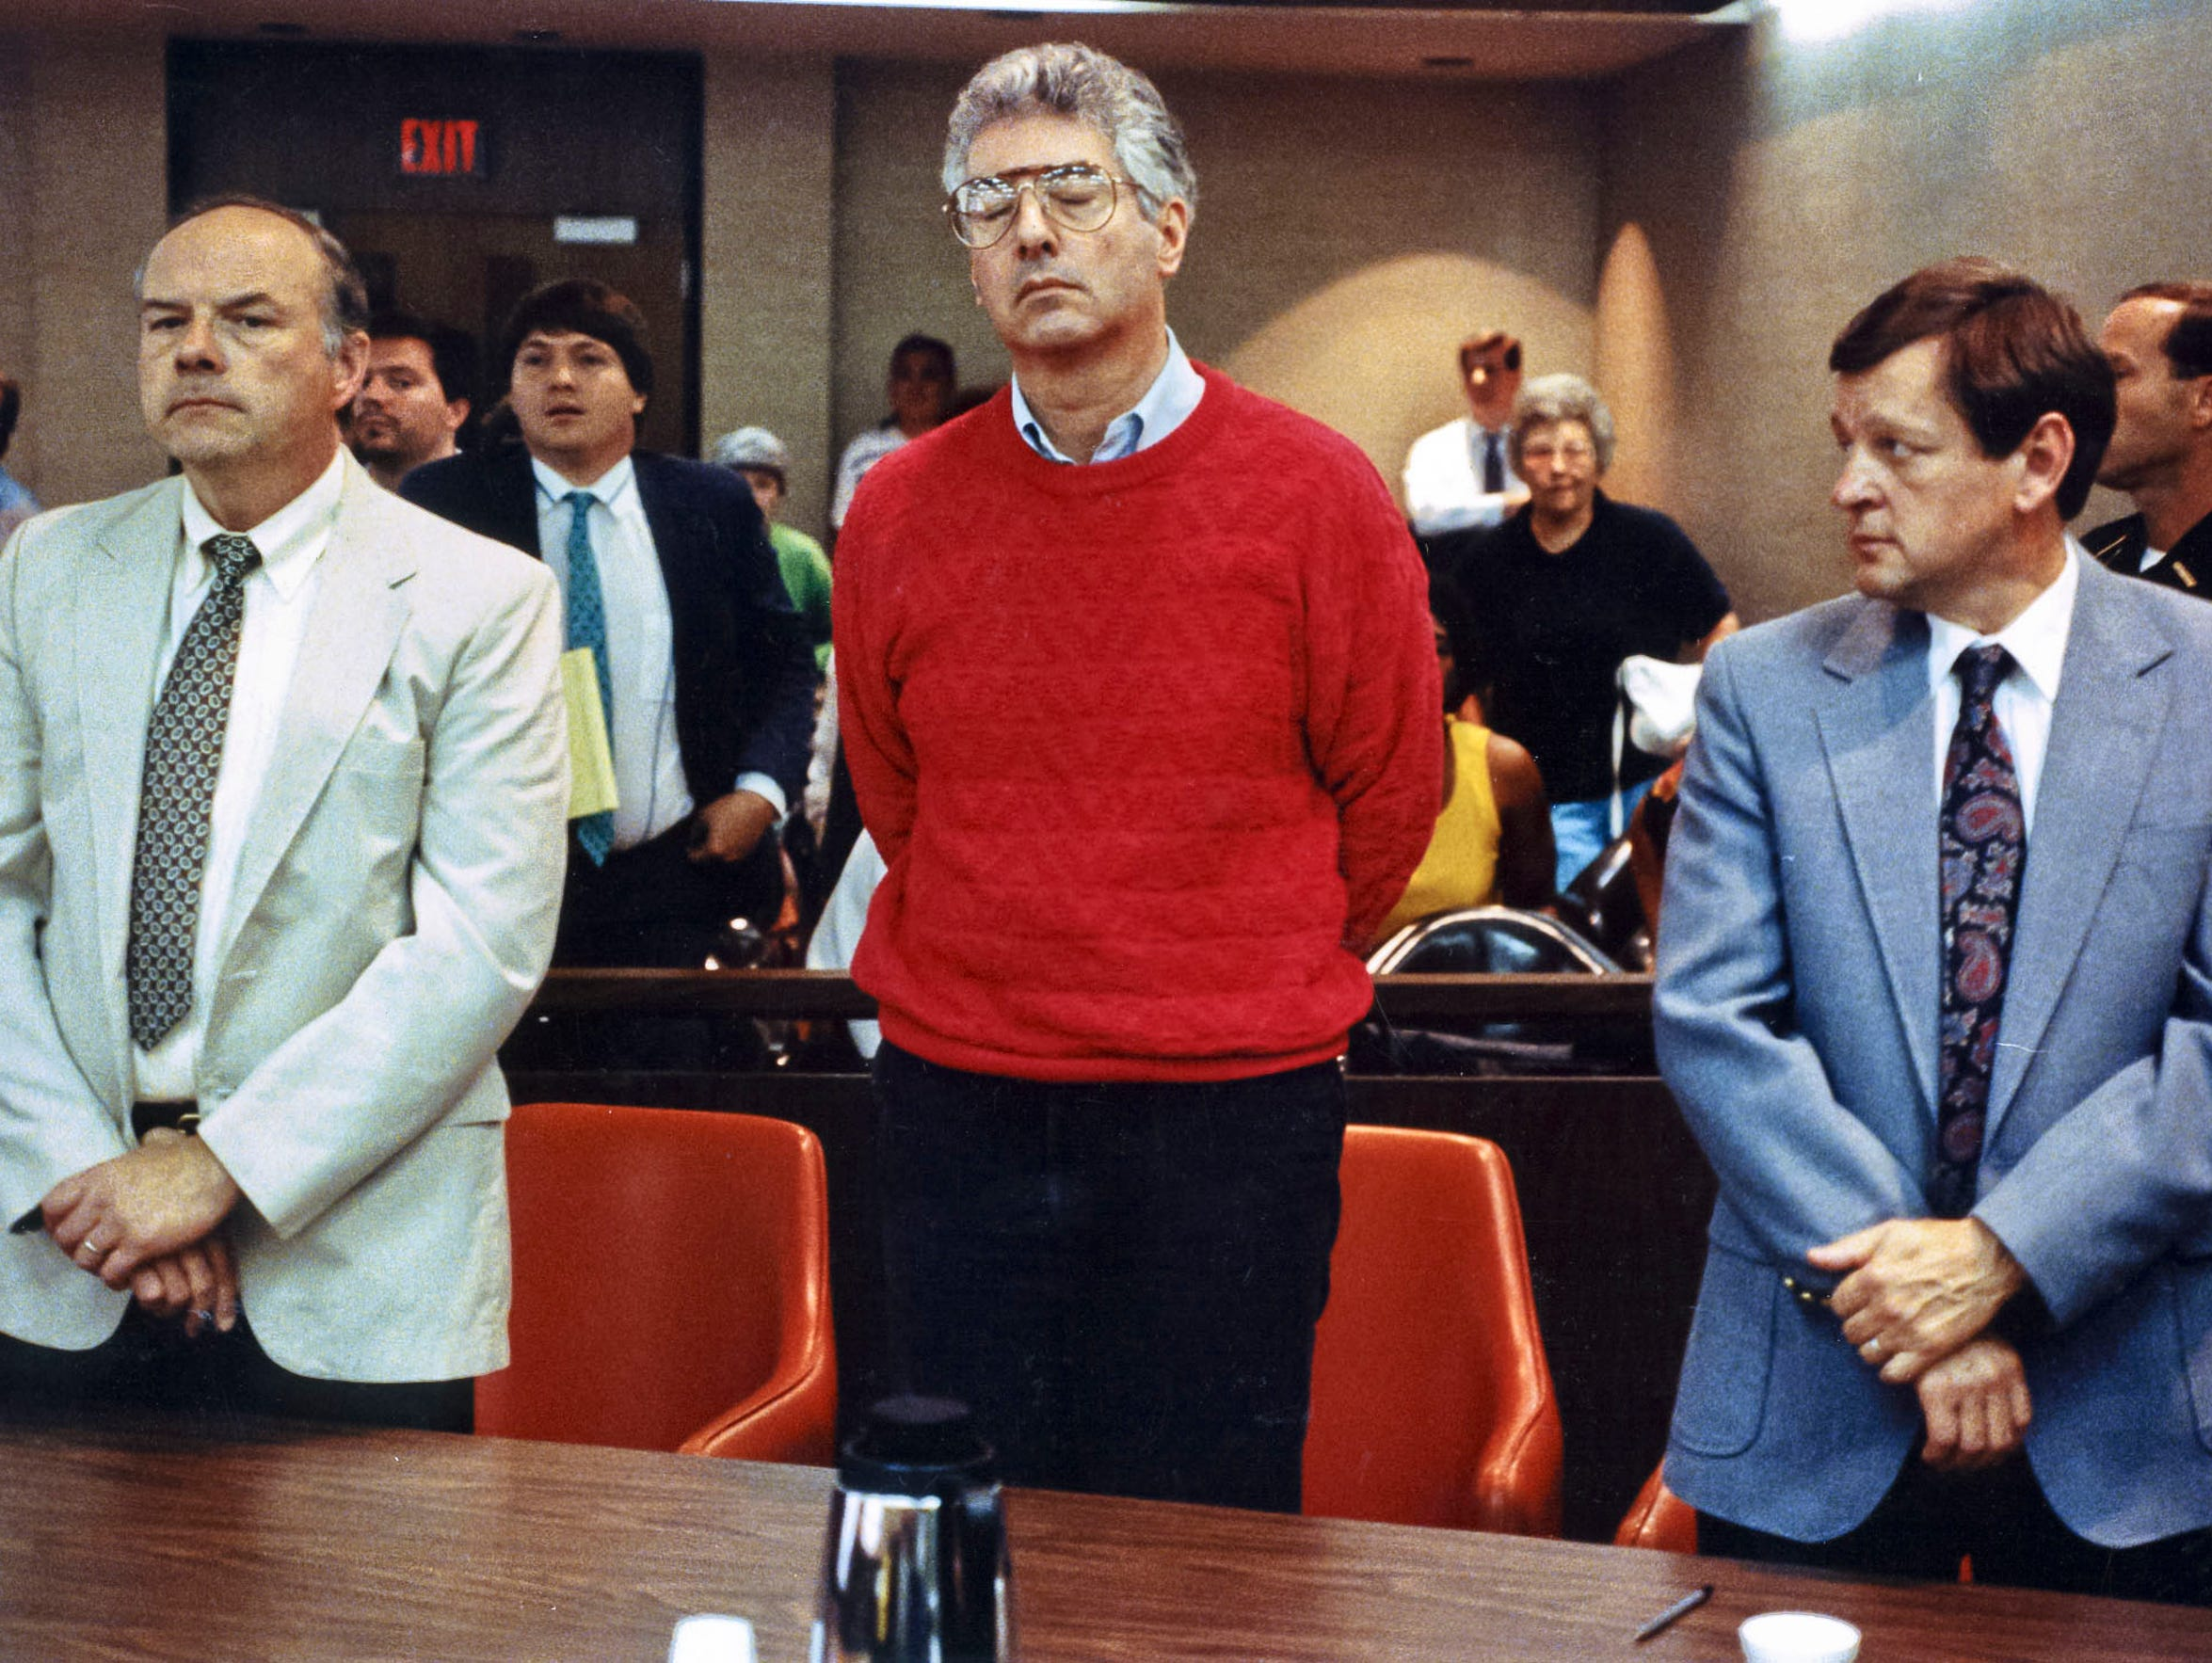 Dr. John Boyle (center) was sentenced to life in prison